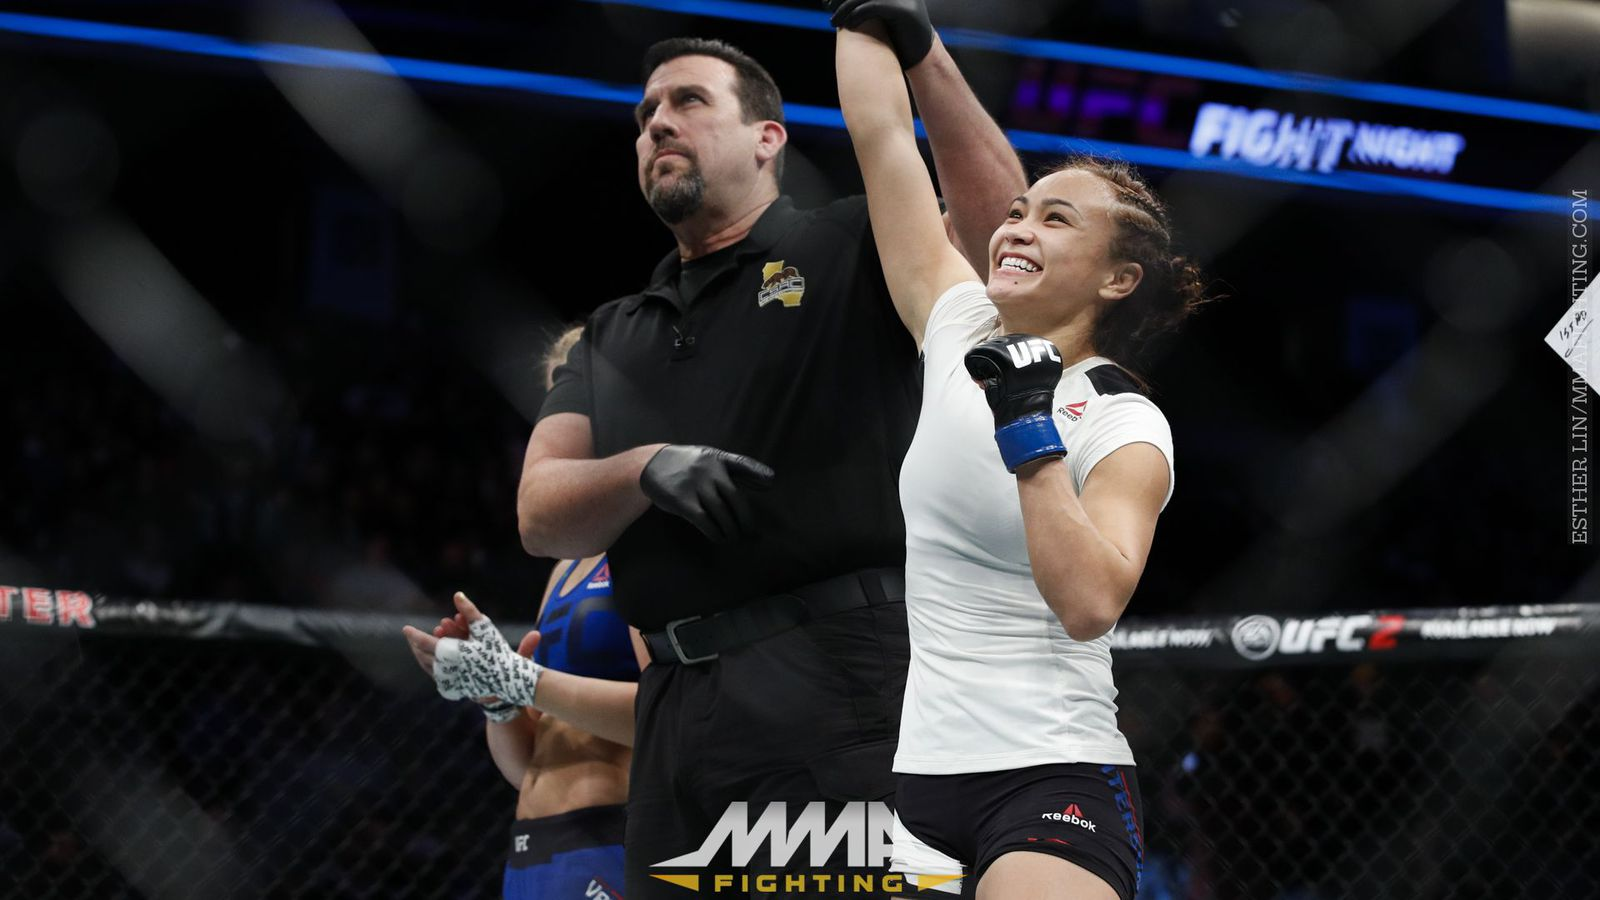 Michelle Waterson chokes out Paige VanZant in her first